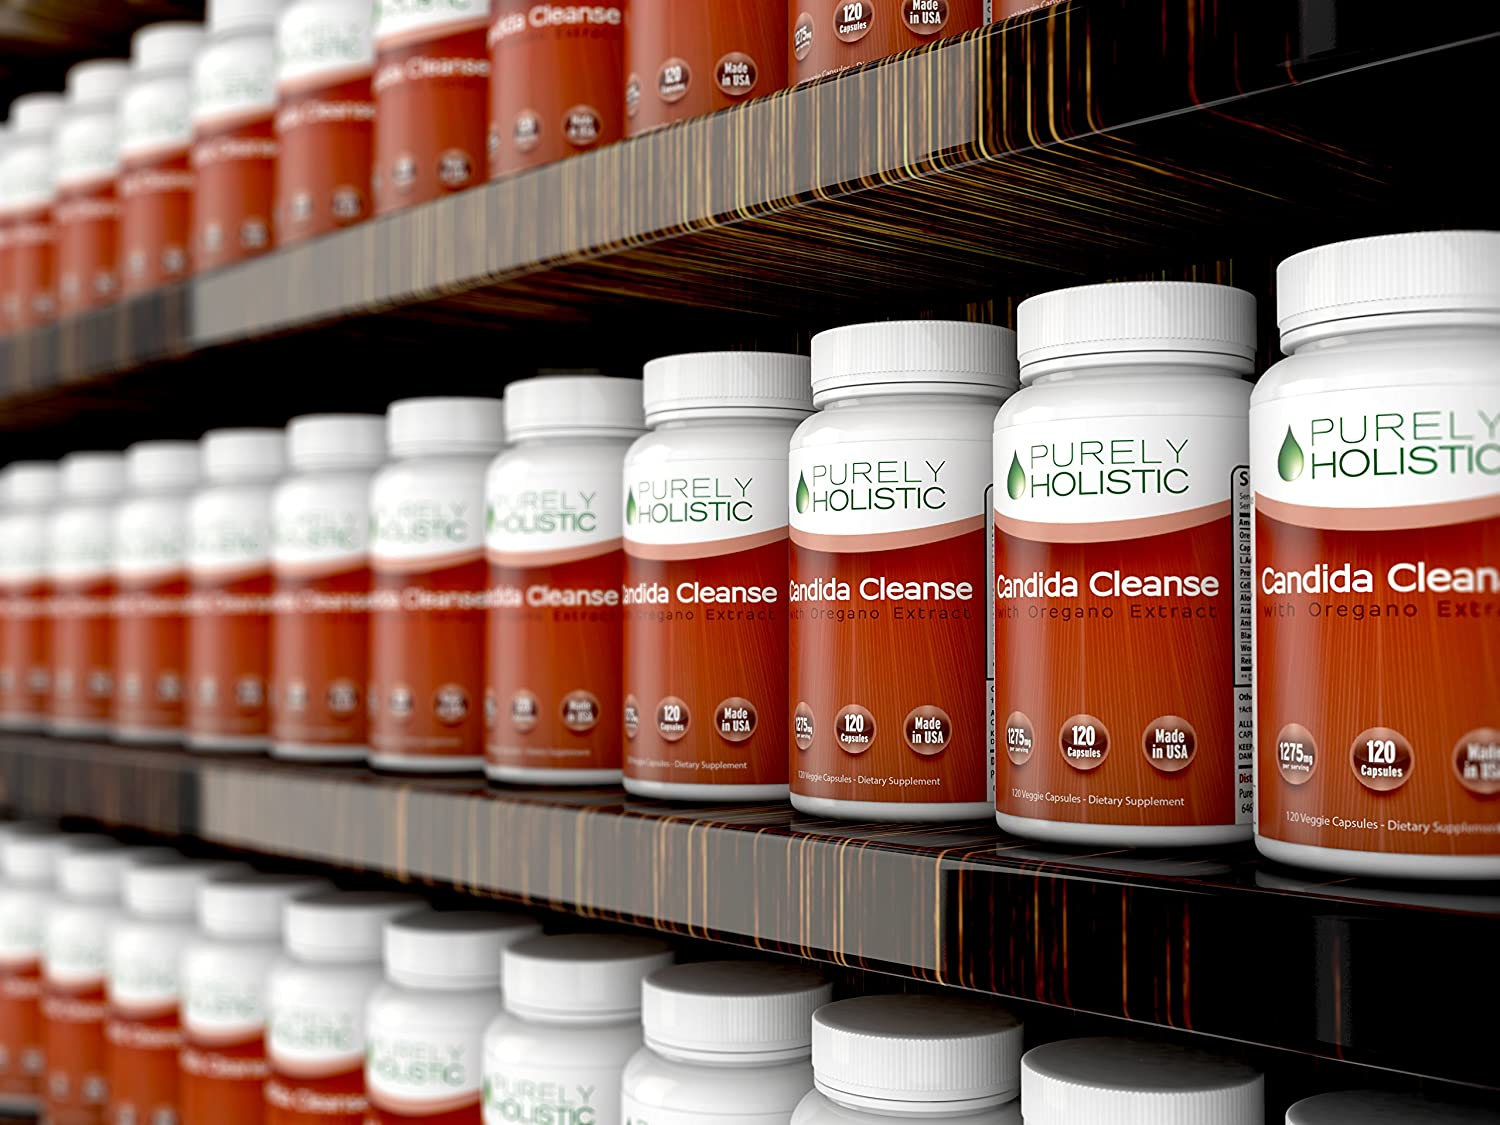 Candida probiotic herbal store buy - Amazon Com Candida Cleanse 120 Capsules Veggie Caps With Herbs Antifungals Enzymes And Probiotics Health Personal Care